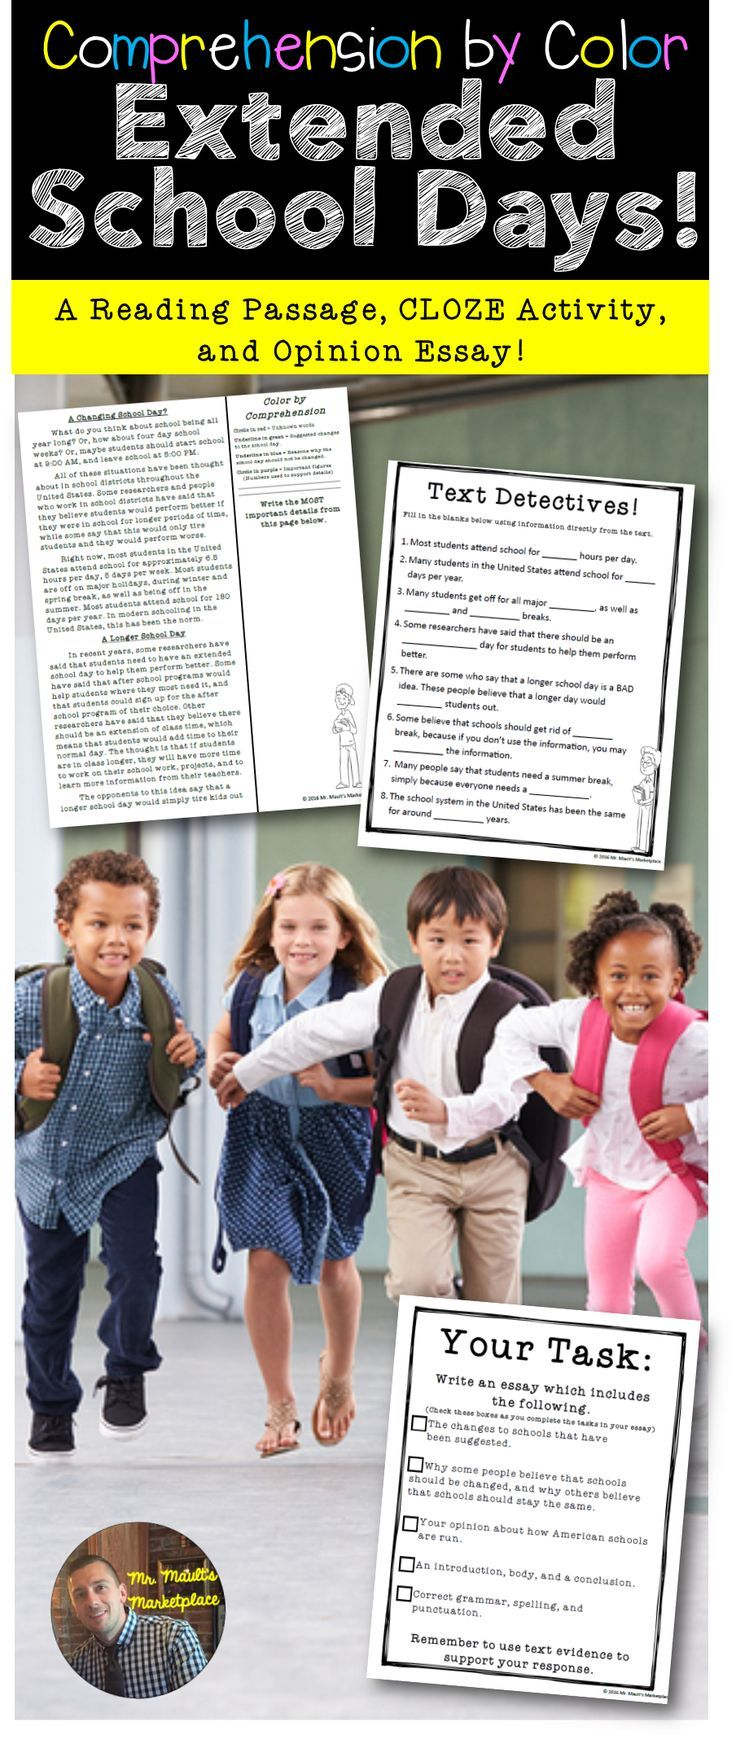 shorter school days essay The negative effects of extending school days essay - many schools in america today are considering in having a longer schedule vacations are shortened resulting in shorter family bonding time high school students would have conflicts with summer jobs [tags: extended school.